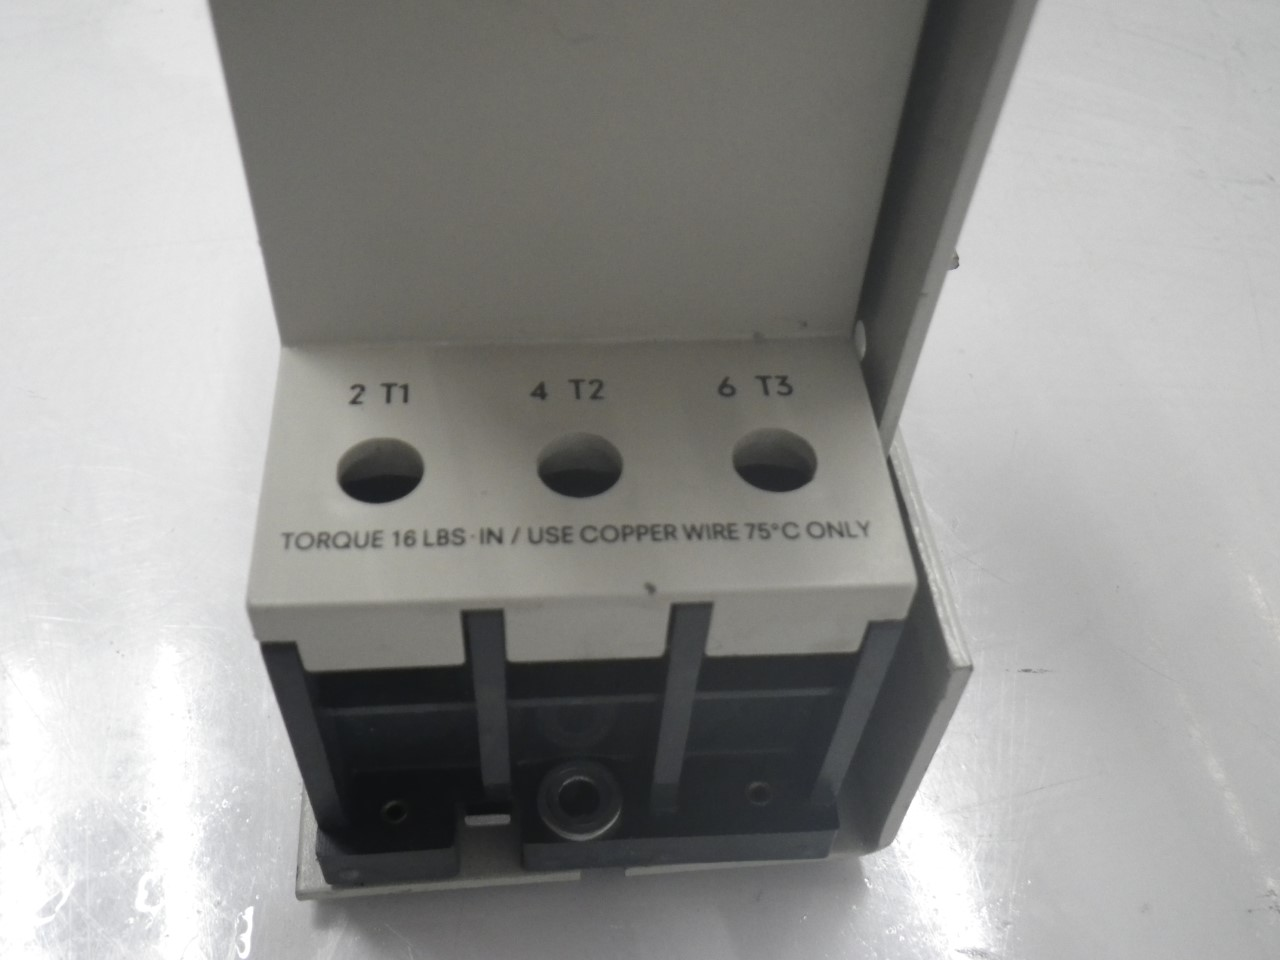 IMGP68893VE3-000-2PA00Siemens 3ve3-000-2pa00 Starter Protector 22-32a (Used Tested) (10)